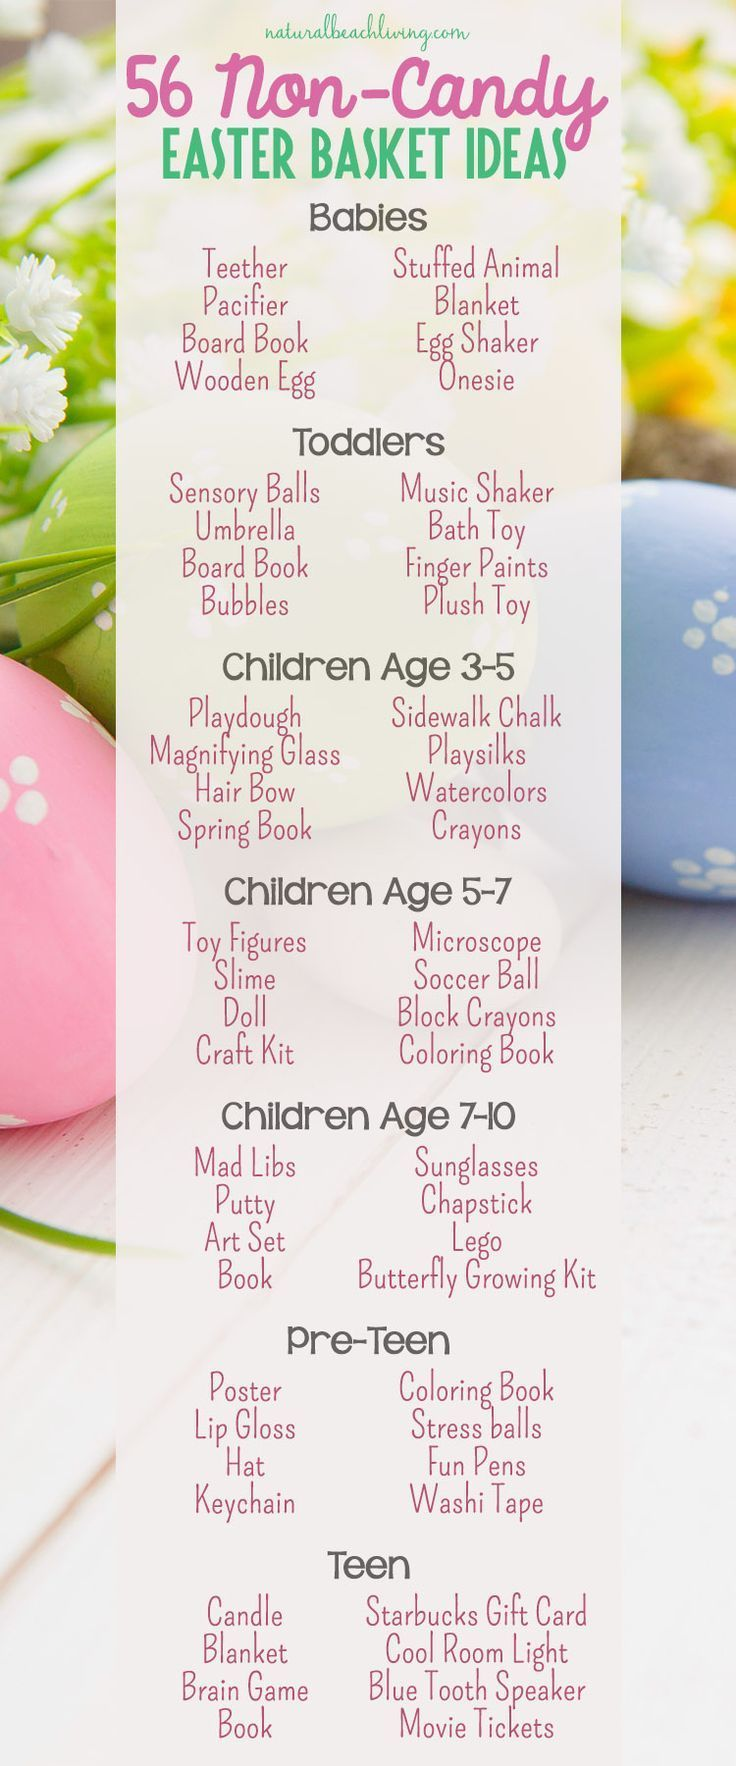 56 Non Candy Easter Basket Ideas for Kids | Teen gifts, Basket